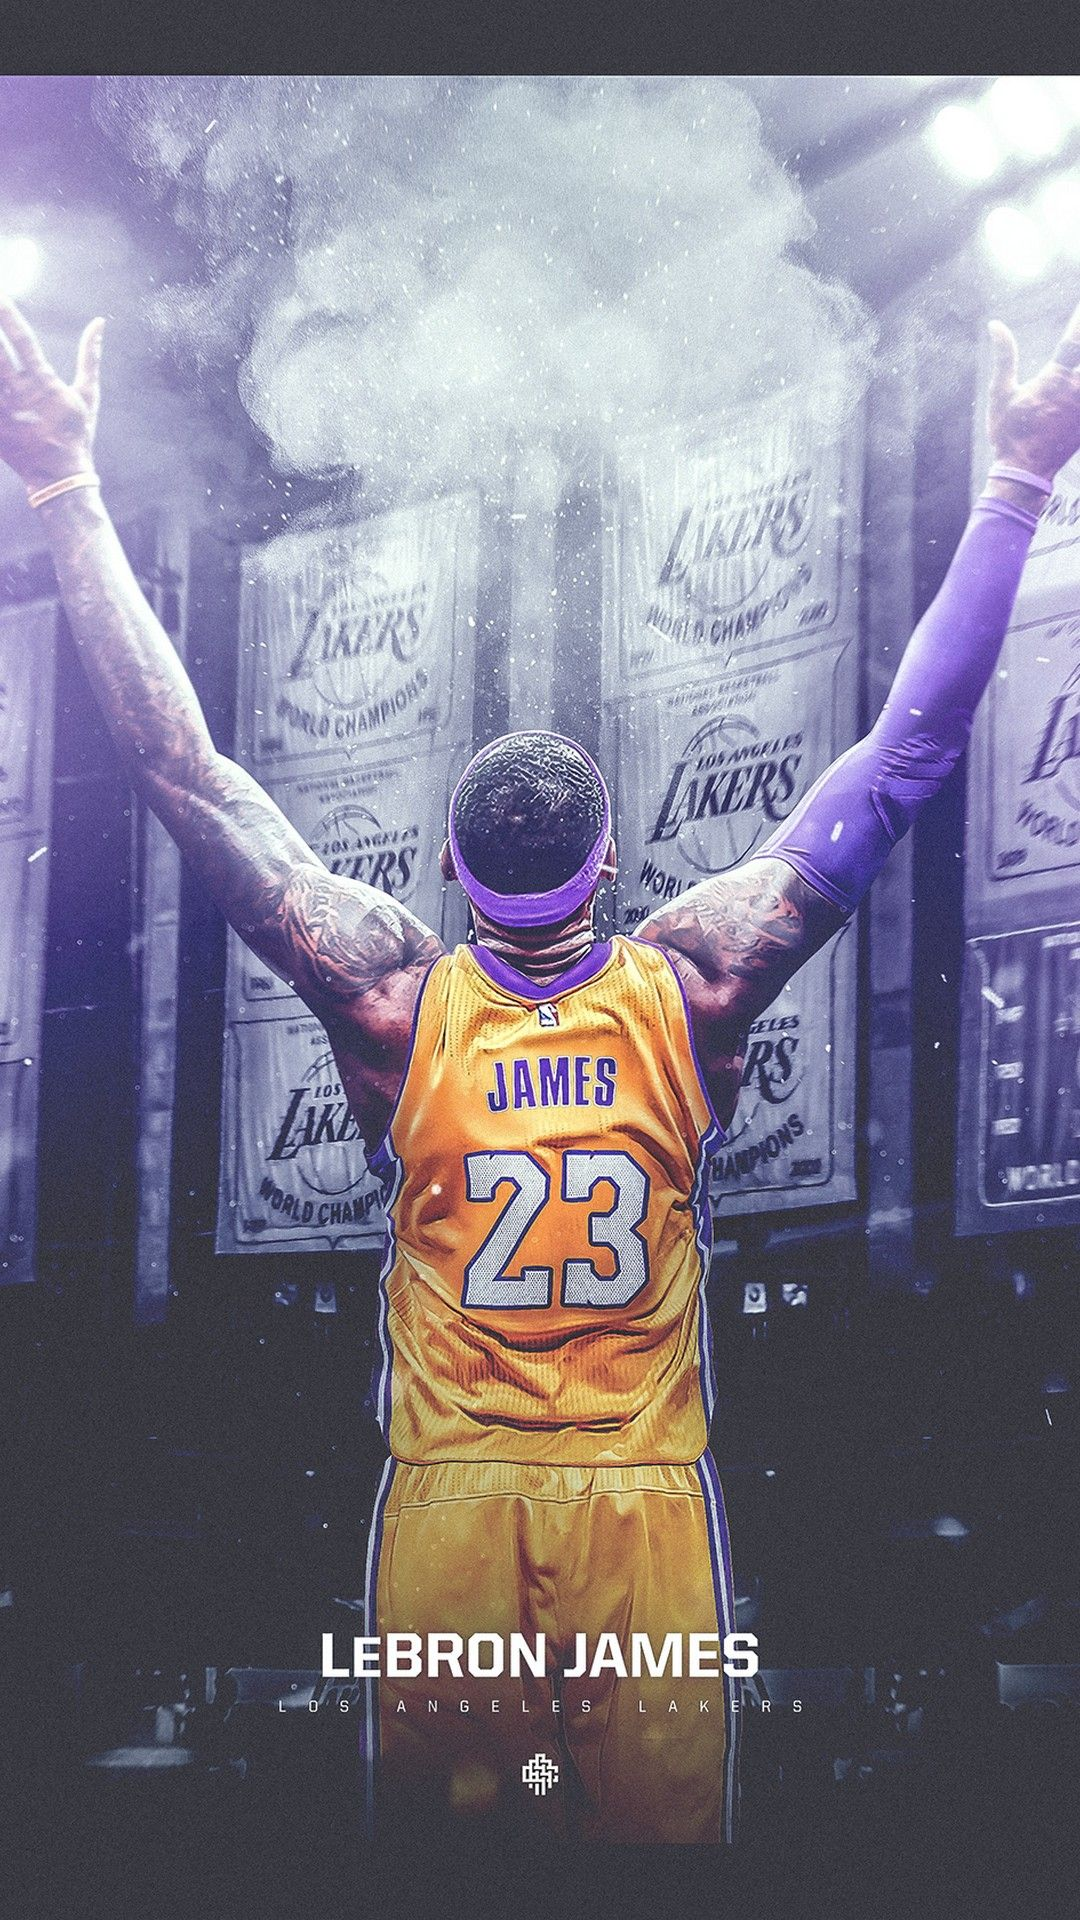 LeBron James LA Lakers HD Wallpaper For iPhone Nba